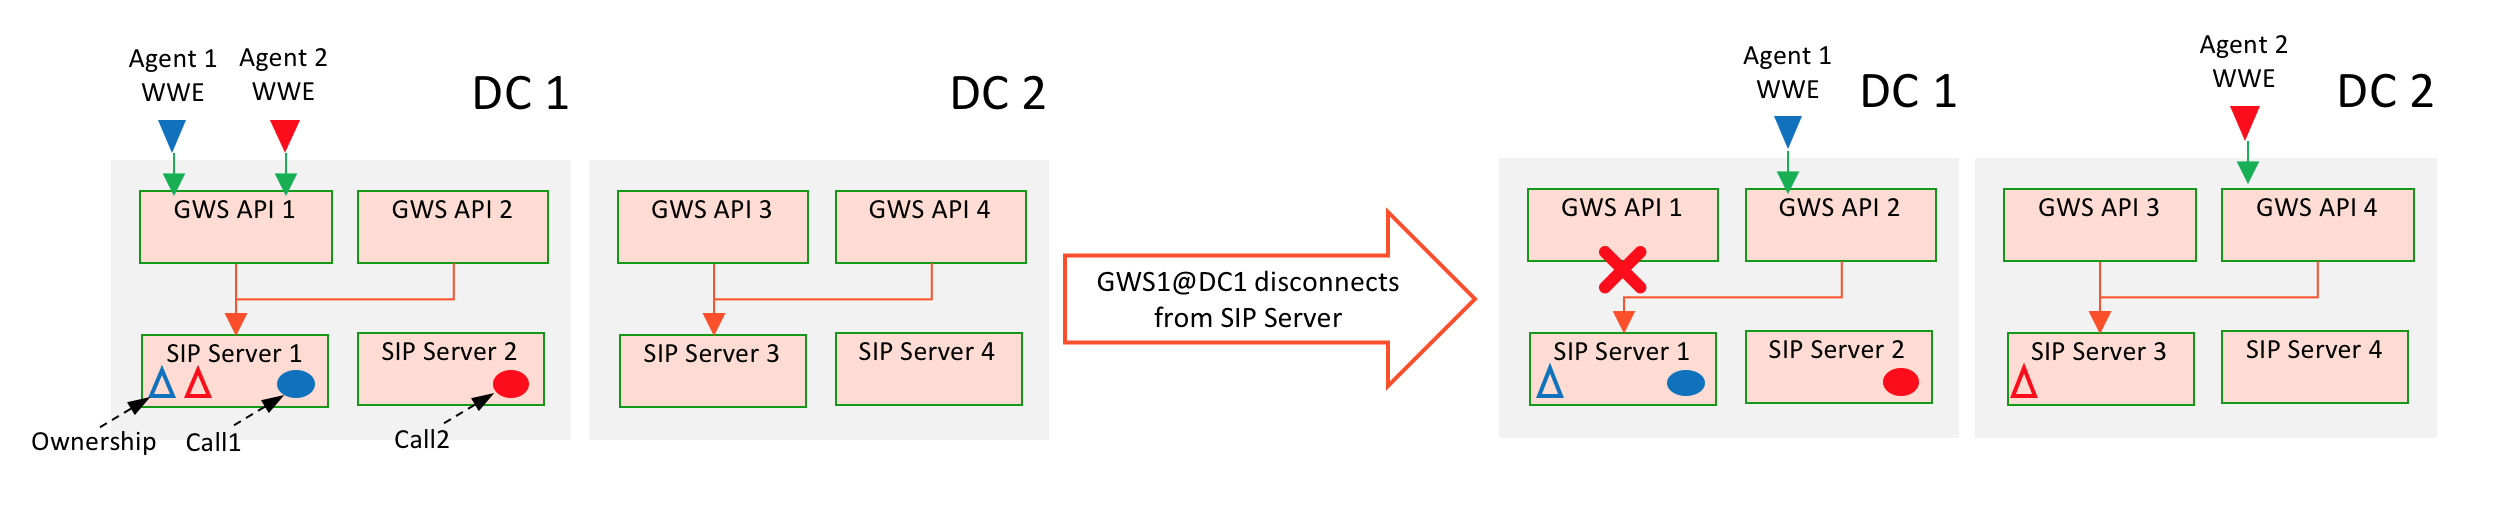 Gws sipcluster dr gws disconnected.png